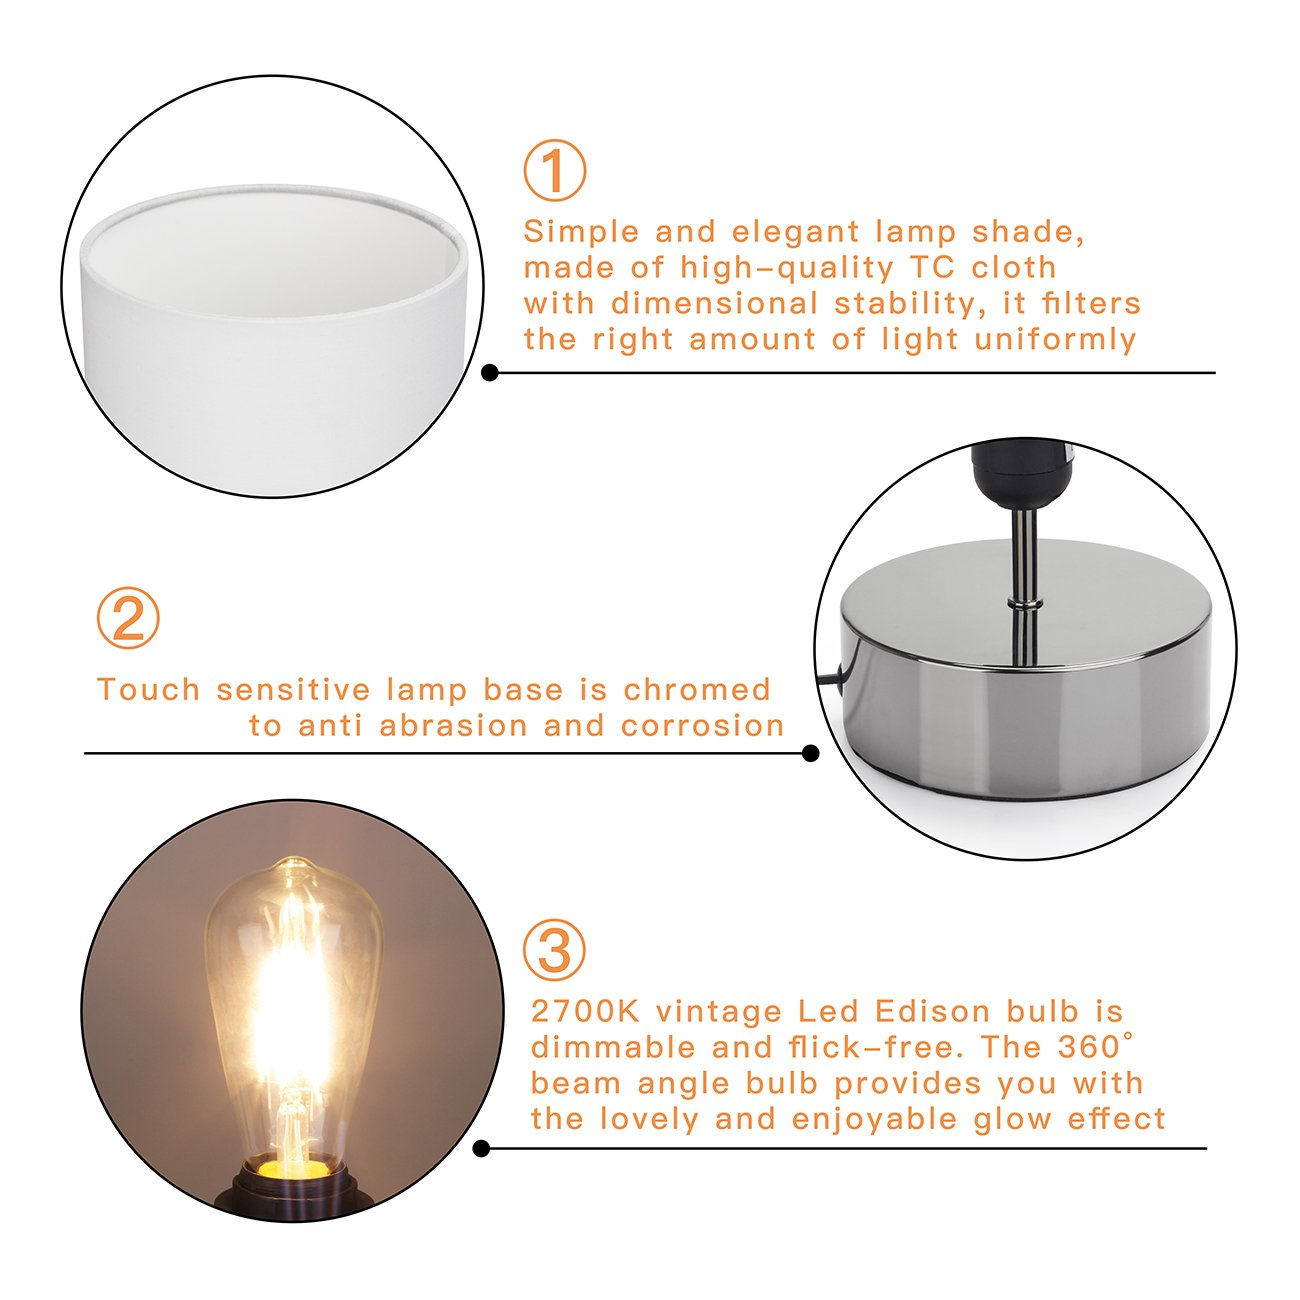 Touch Control Table Lamp Bedside Minimalist Desk Lamp Modern Accent Lamp Dimmable Touch Light with Cylinder Lamp Shade Night Light Nightstand Lamp for Bedroom Living Room Kitchen, E26 Bulb Included 71EQThCvKiL